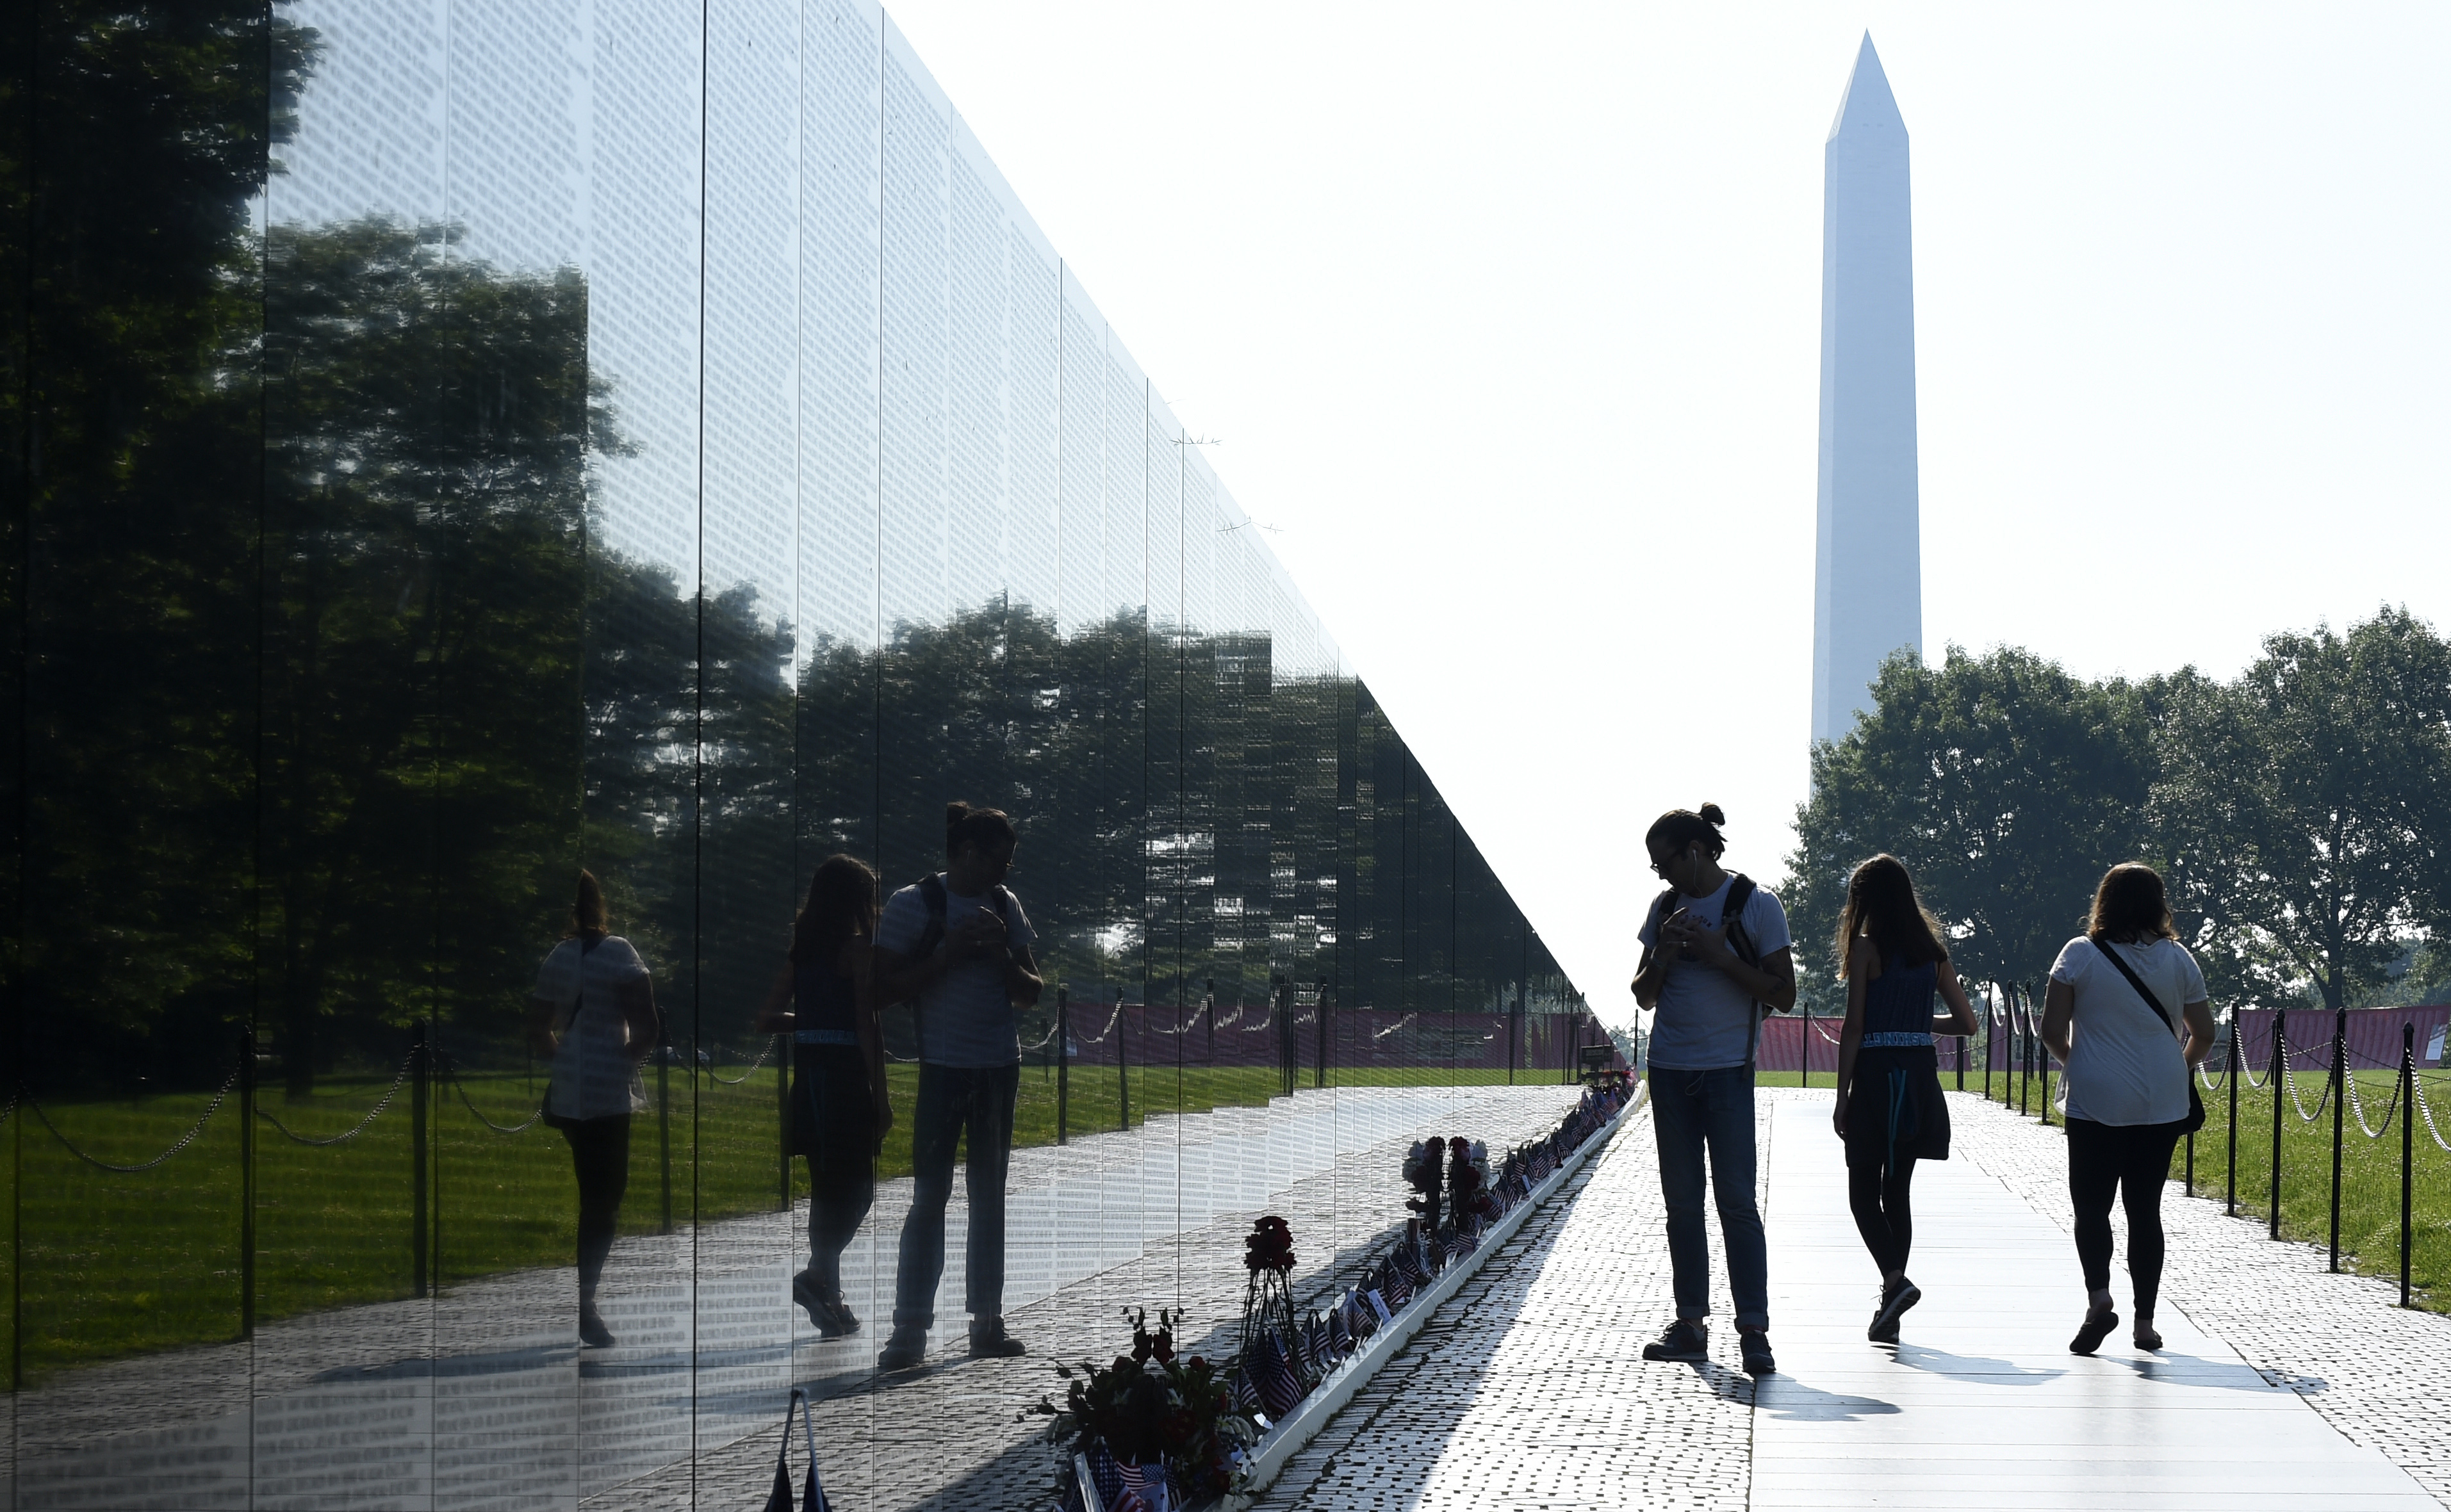 The Washington Monument is seen in the background as people visit the Vietnam Memorial in Washington, Friday, May 27, 2016, on the stat of the Memorial Day weekend. (AP Photo/Susan Walsh)